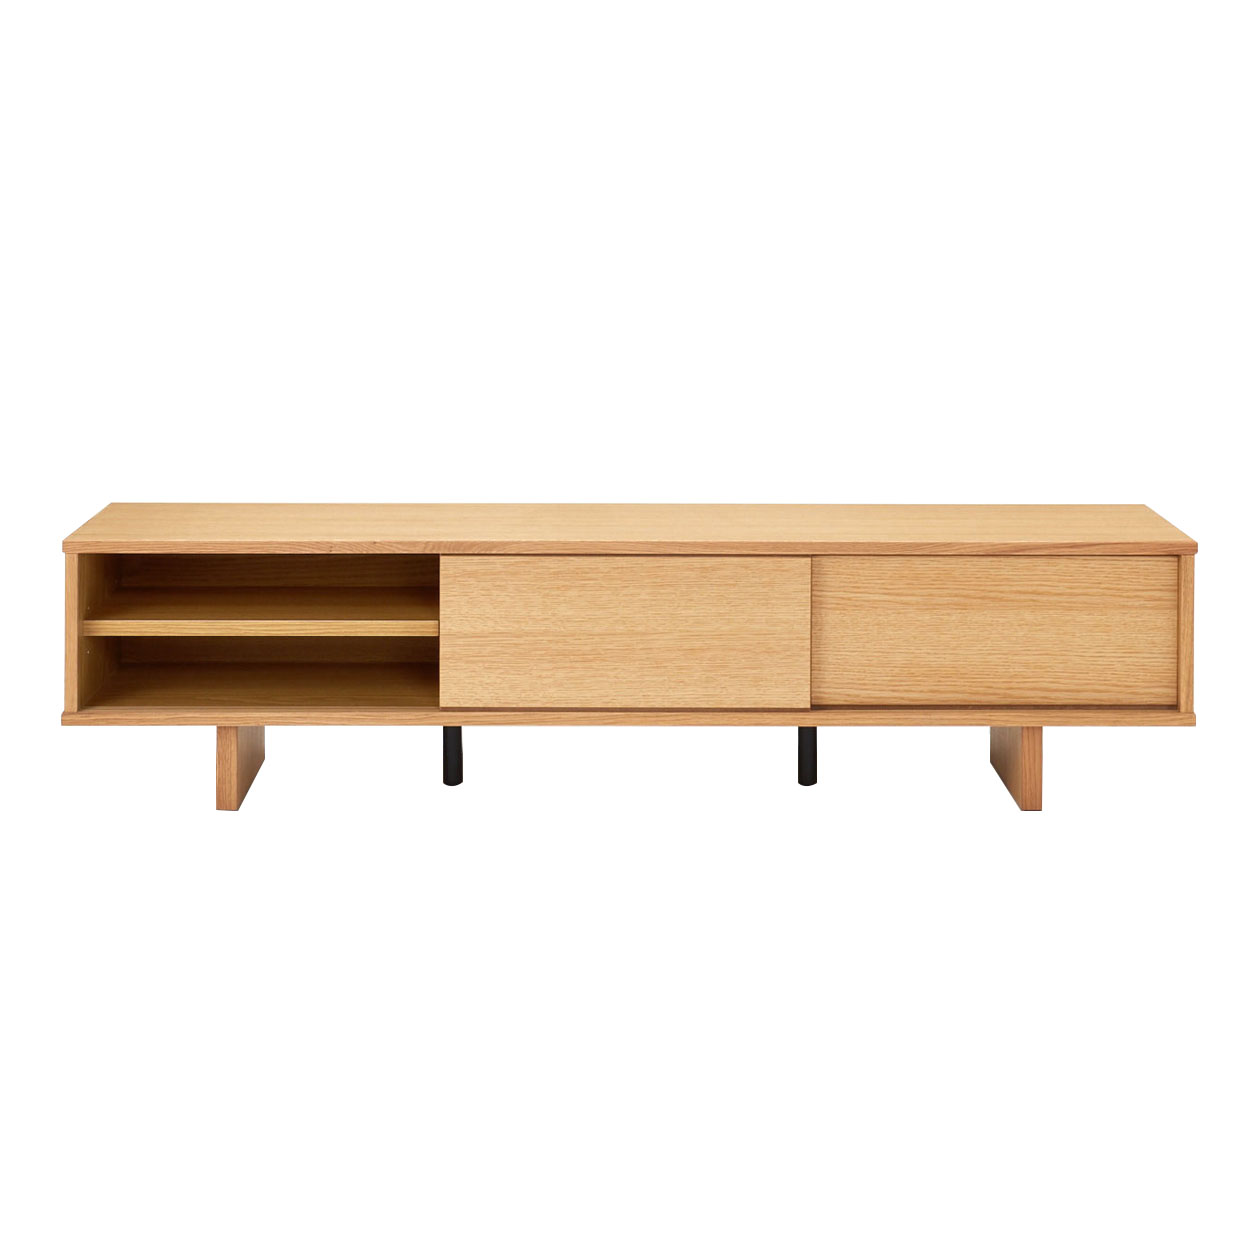 Mini Sofa Hong Kong Oak Wood Living Dining Furniture Muji